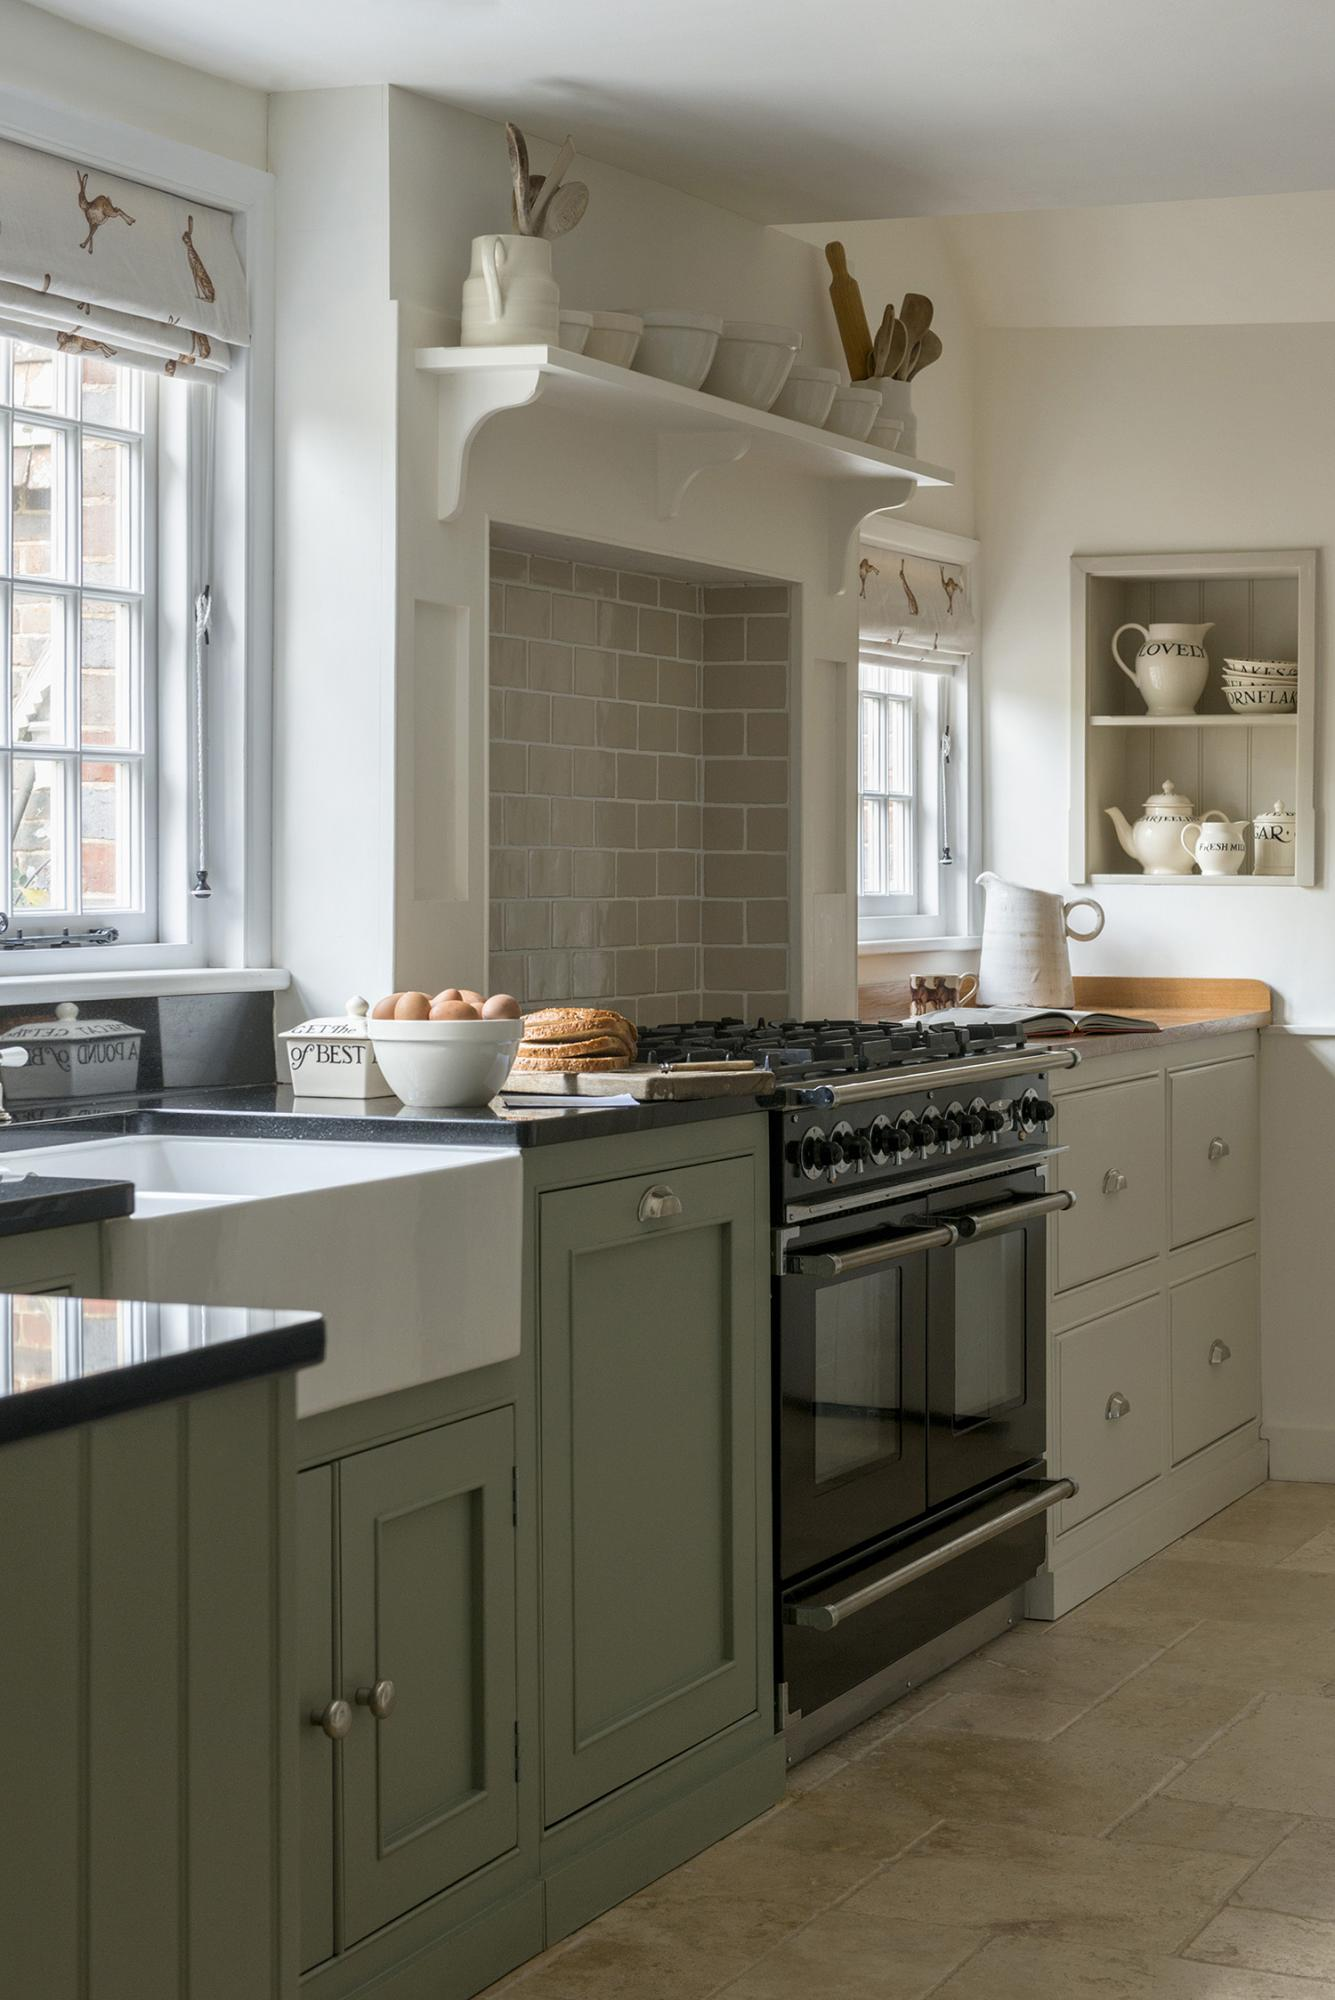 Farmhouse country kitchens design sussex surrey for Kitchen designs new